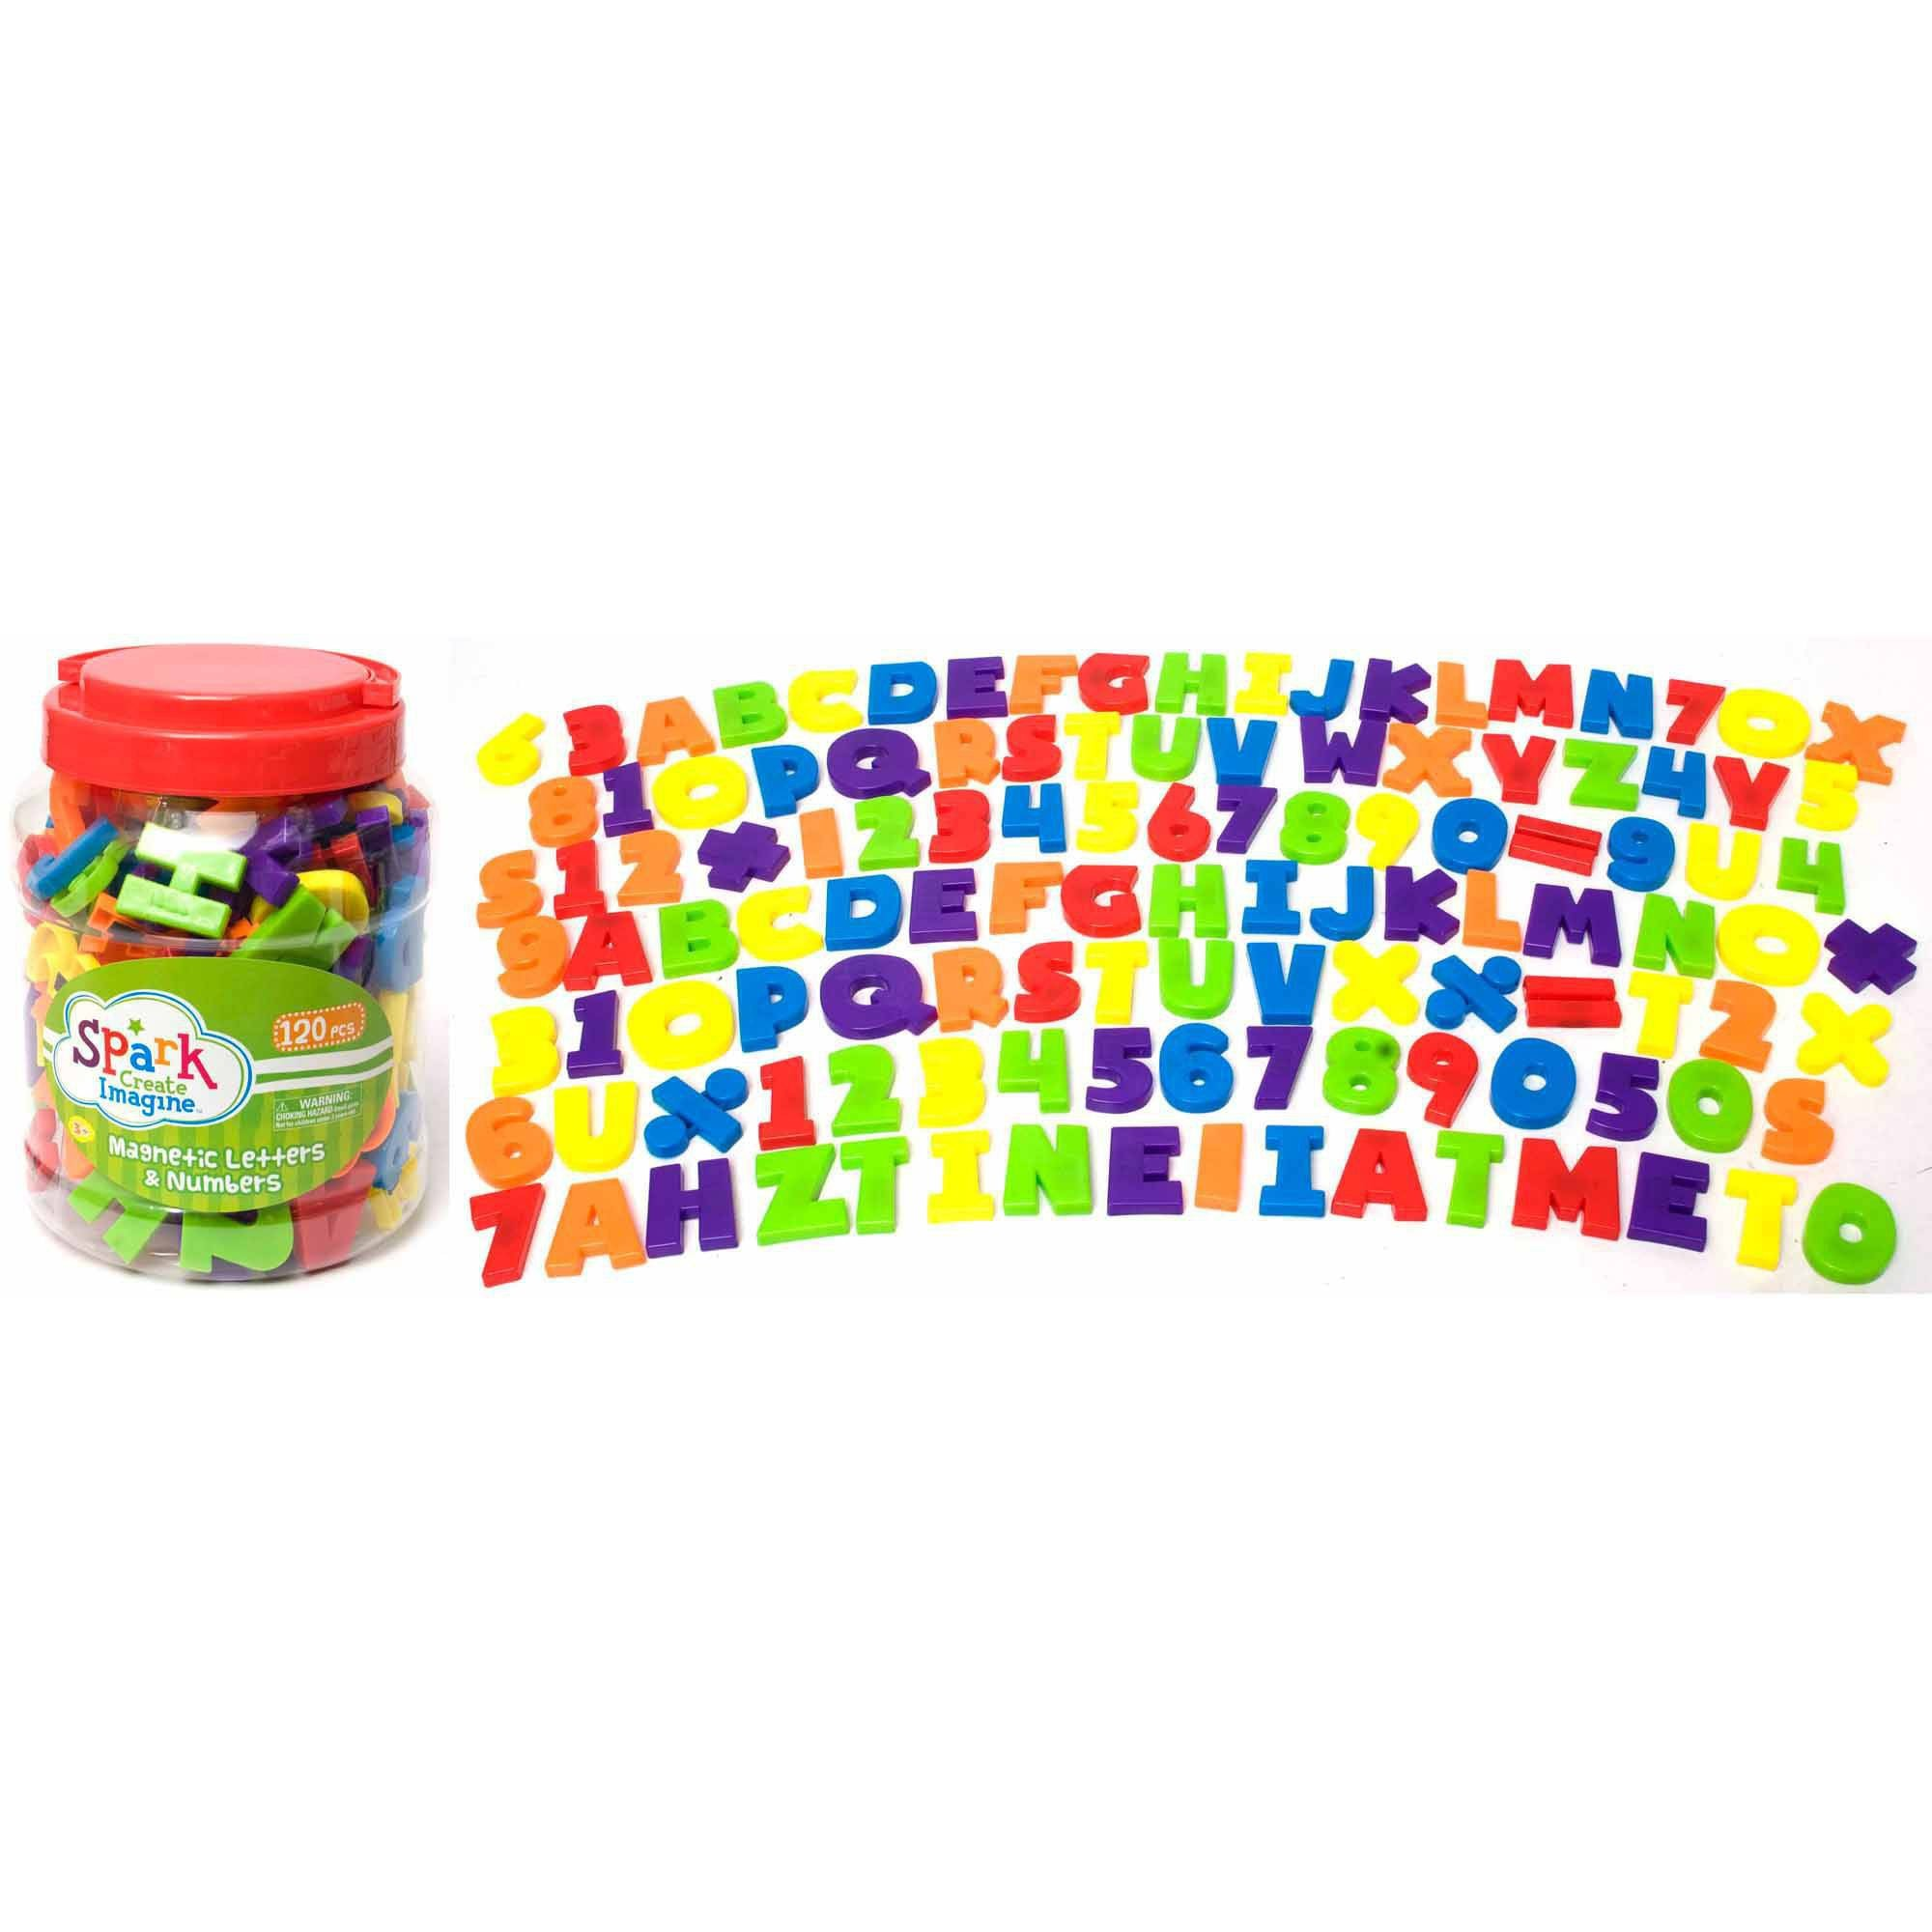 2000x2000 Unique Magnetic Letters And Numbers How To Format A Cover Letter